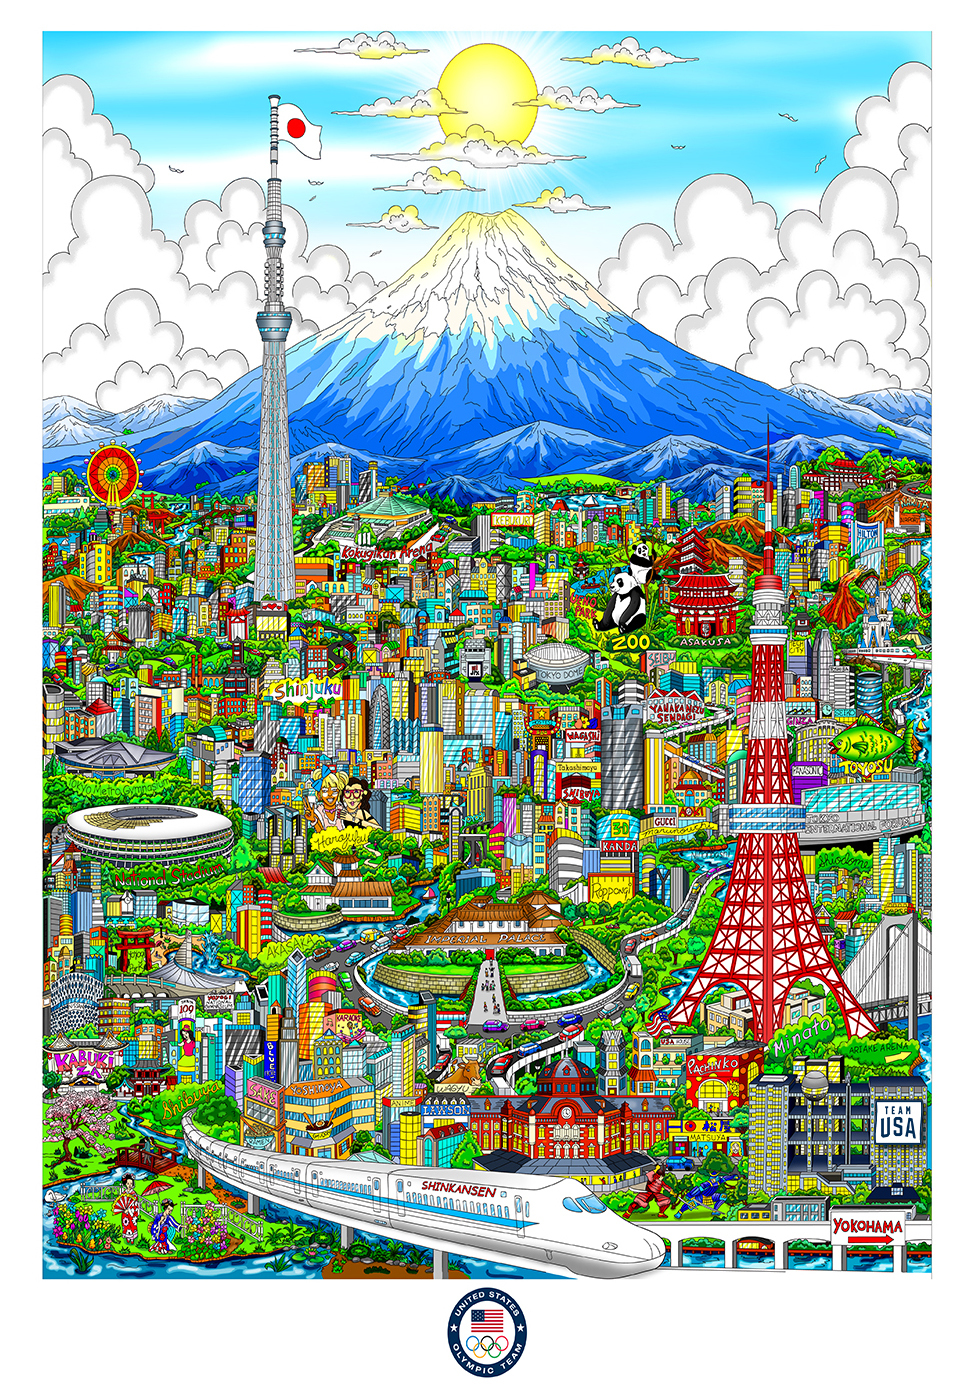 2021 Olympic Games: Tokyo